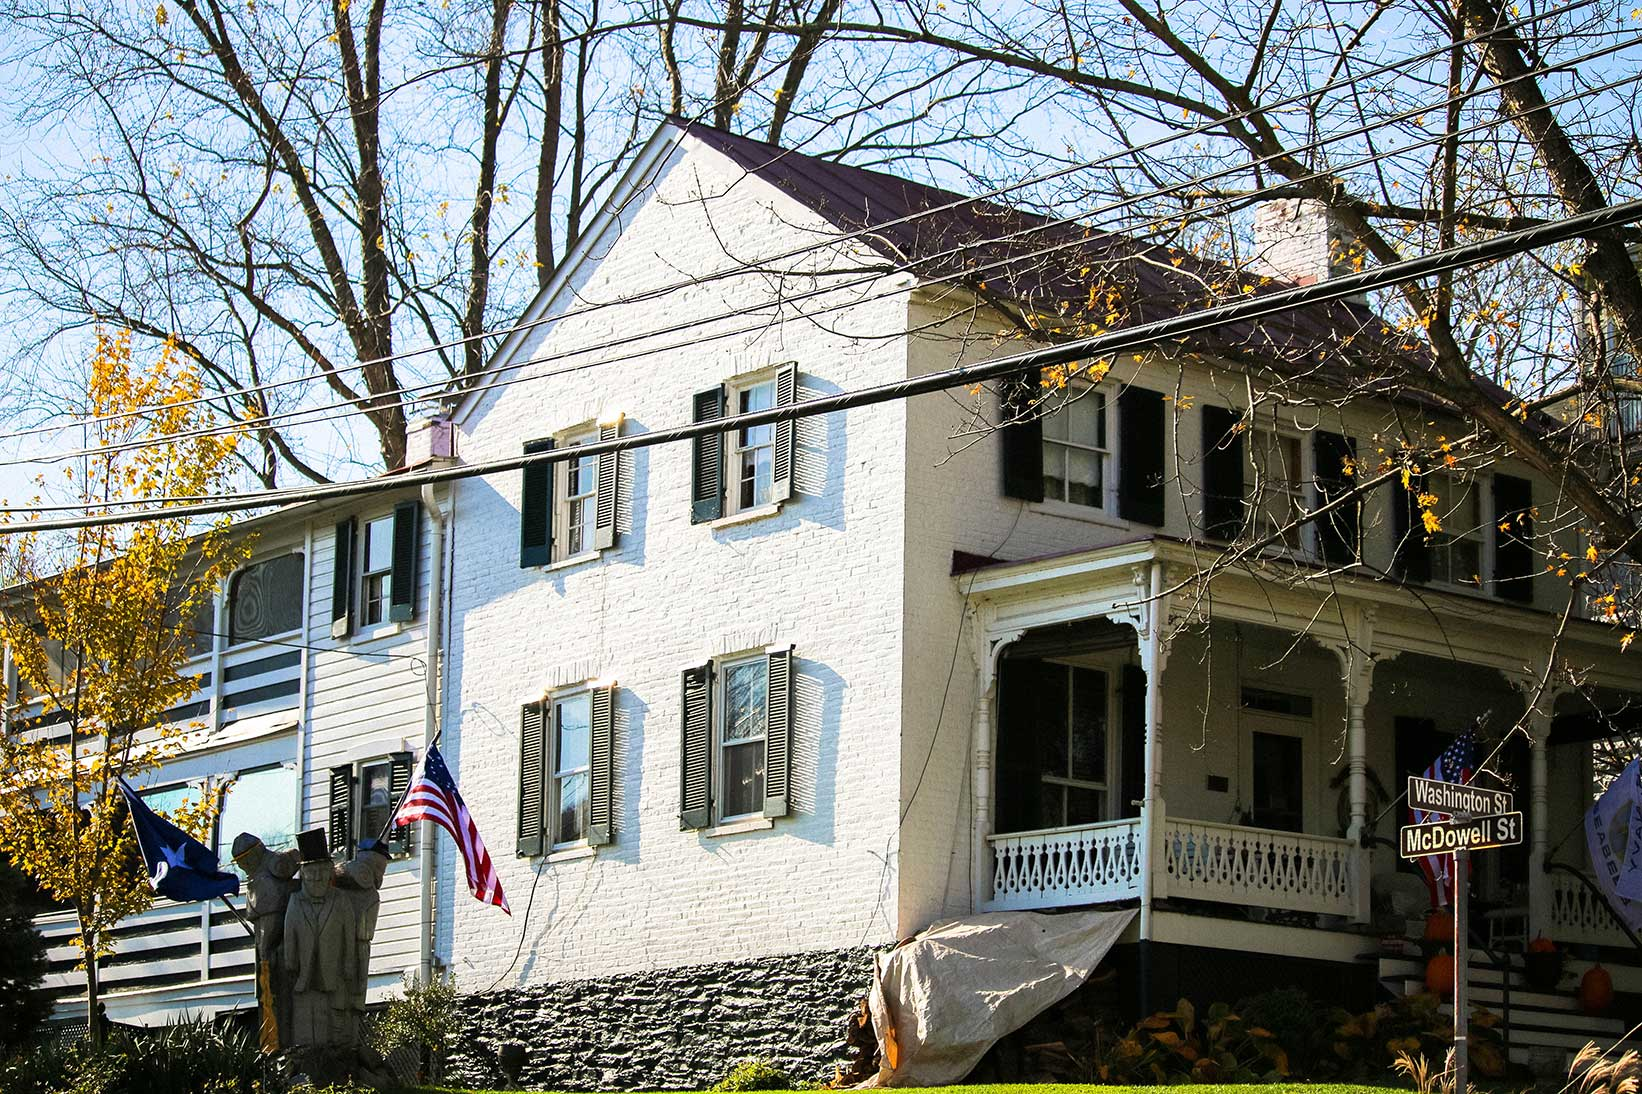 White single family home with statue in Harper's Ferry, WV